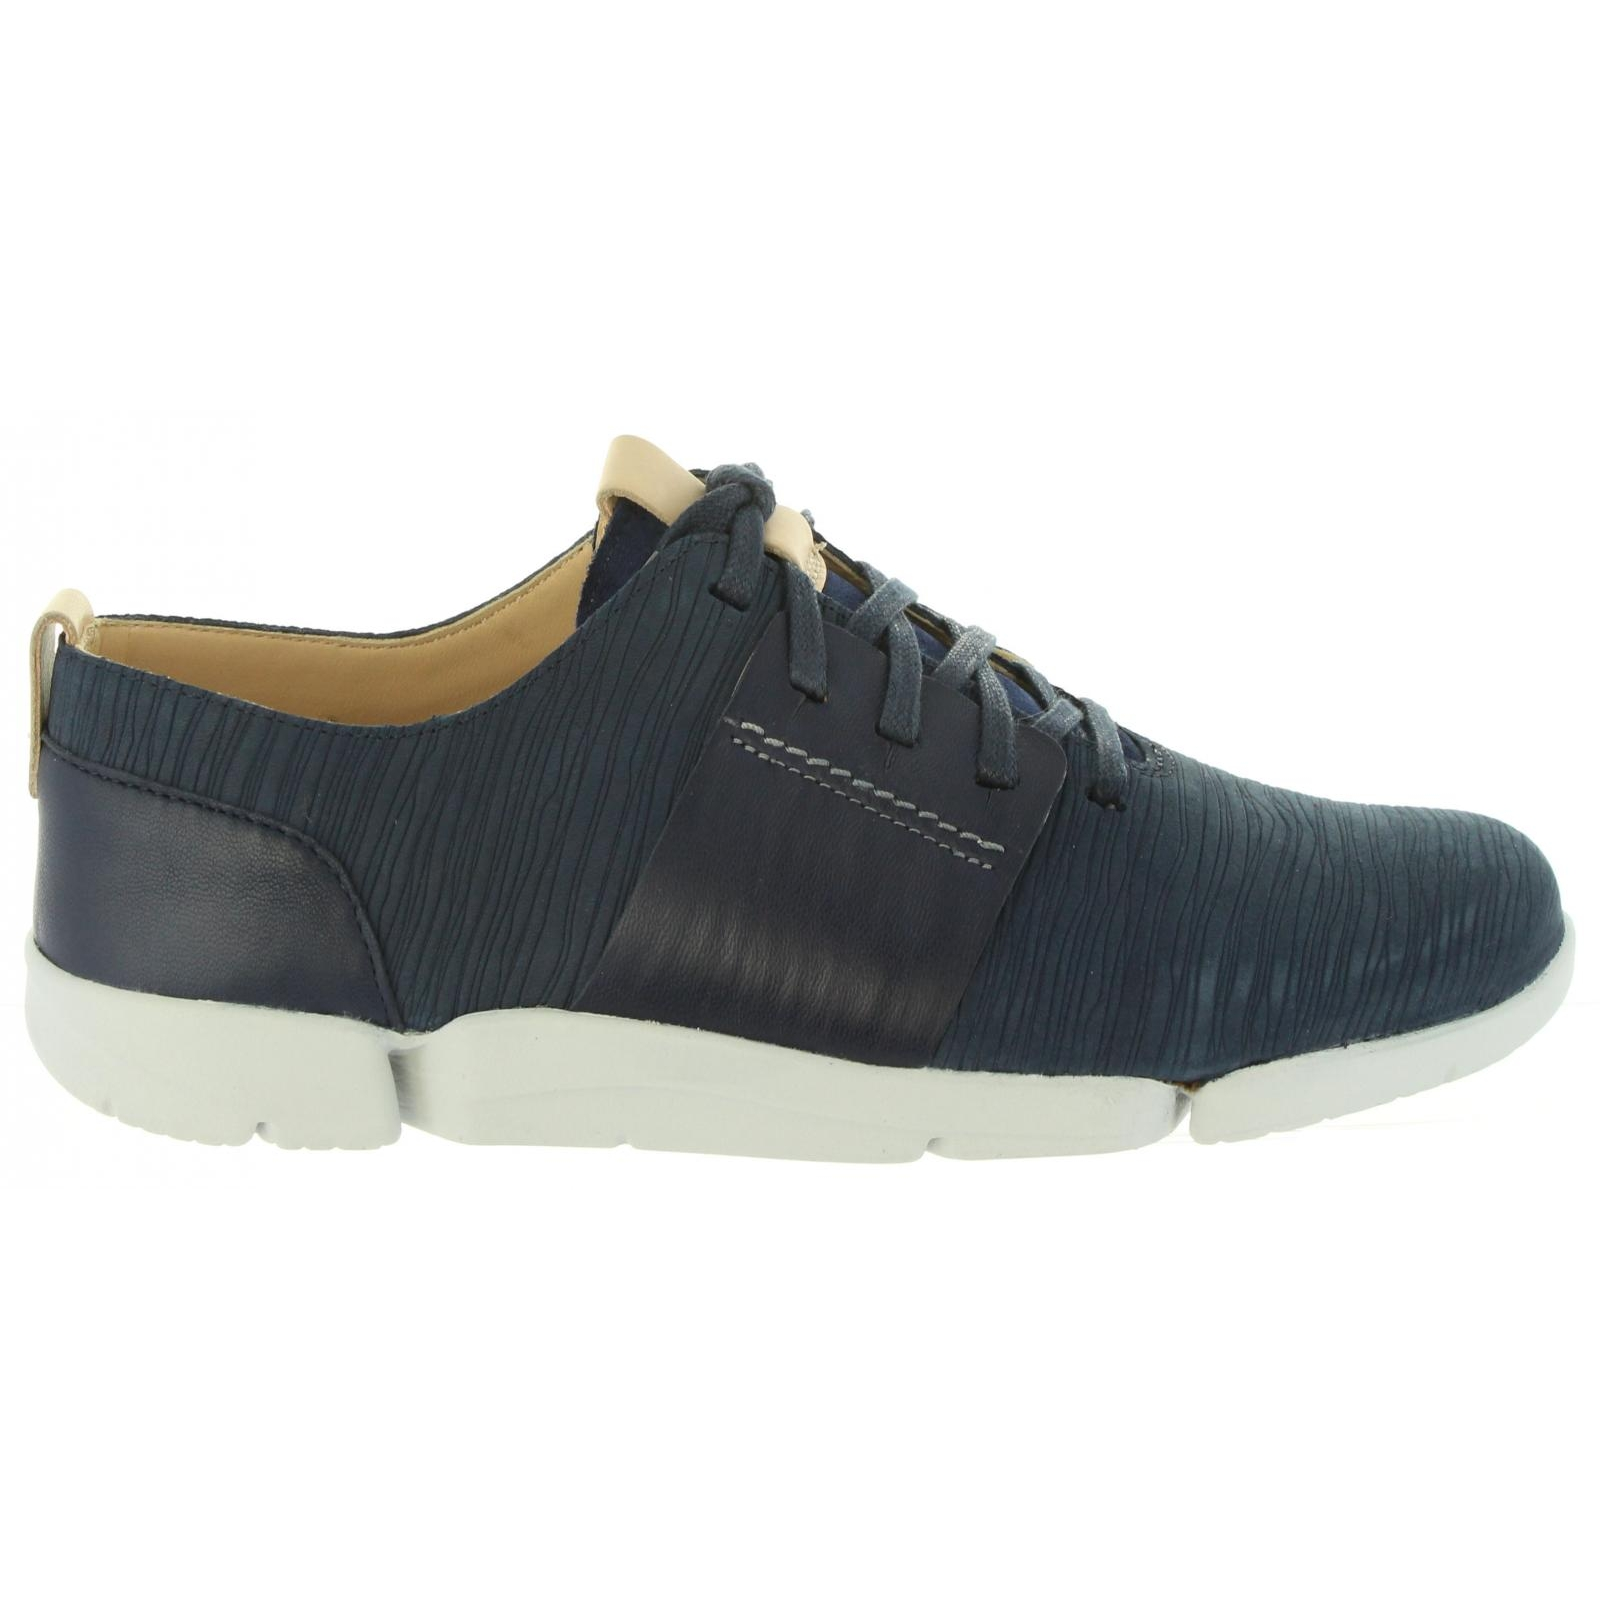 sport chaussures femme CLARKS 26131797 TRI CAITLIN NAVY COMBI Tailles 36